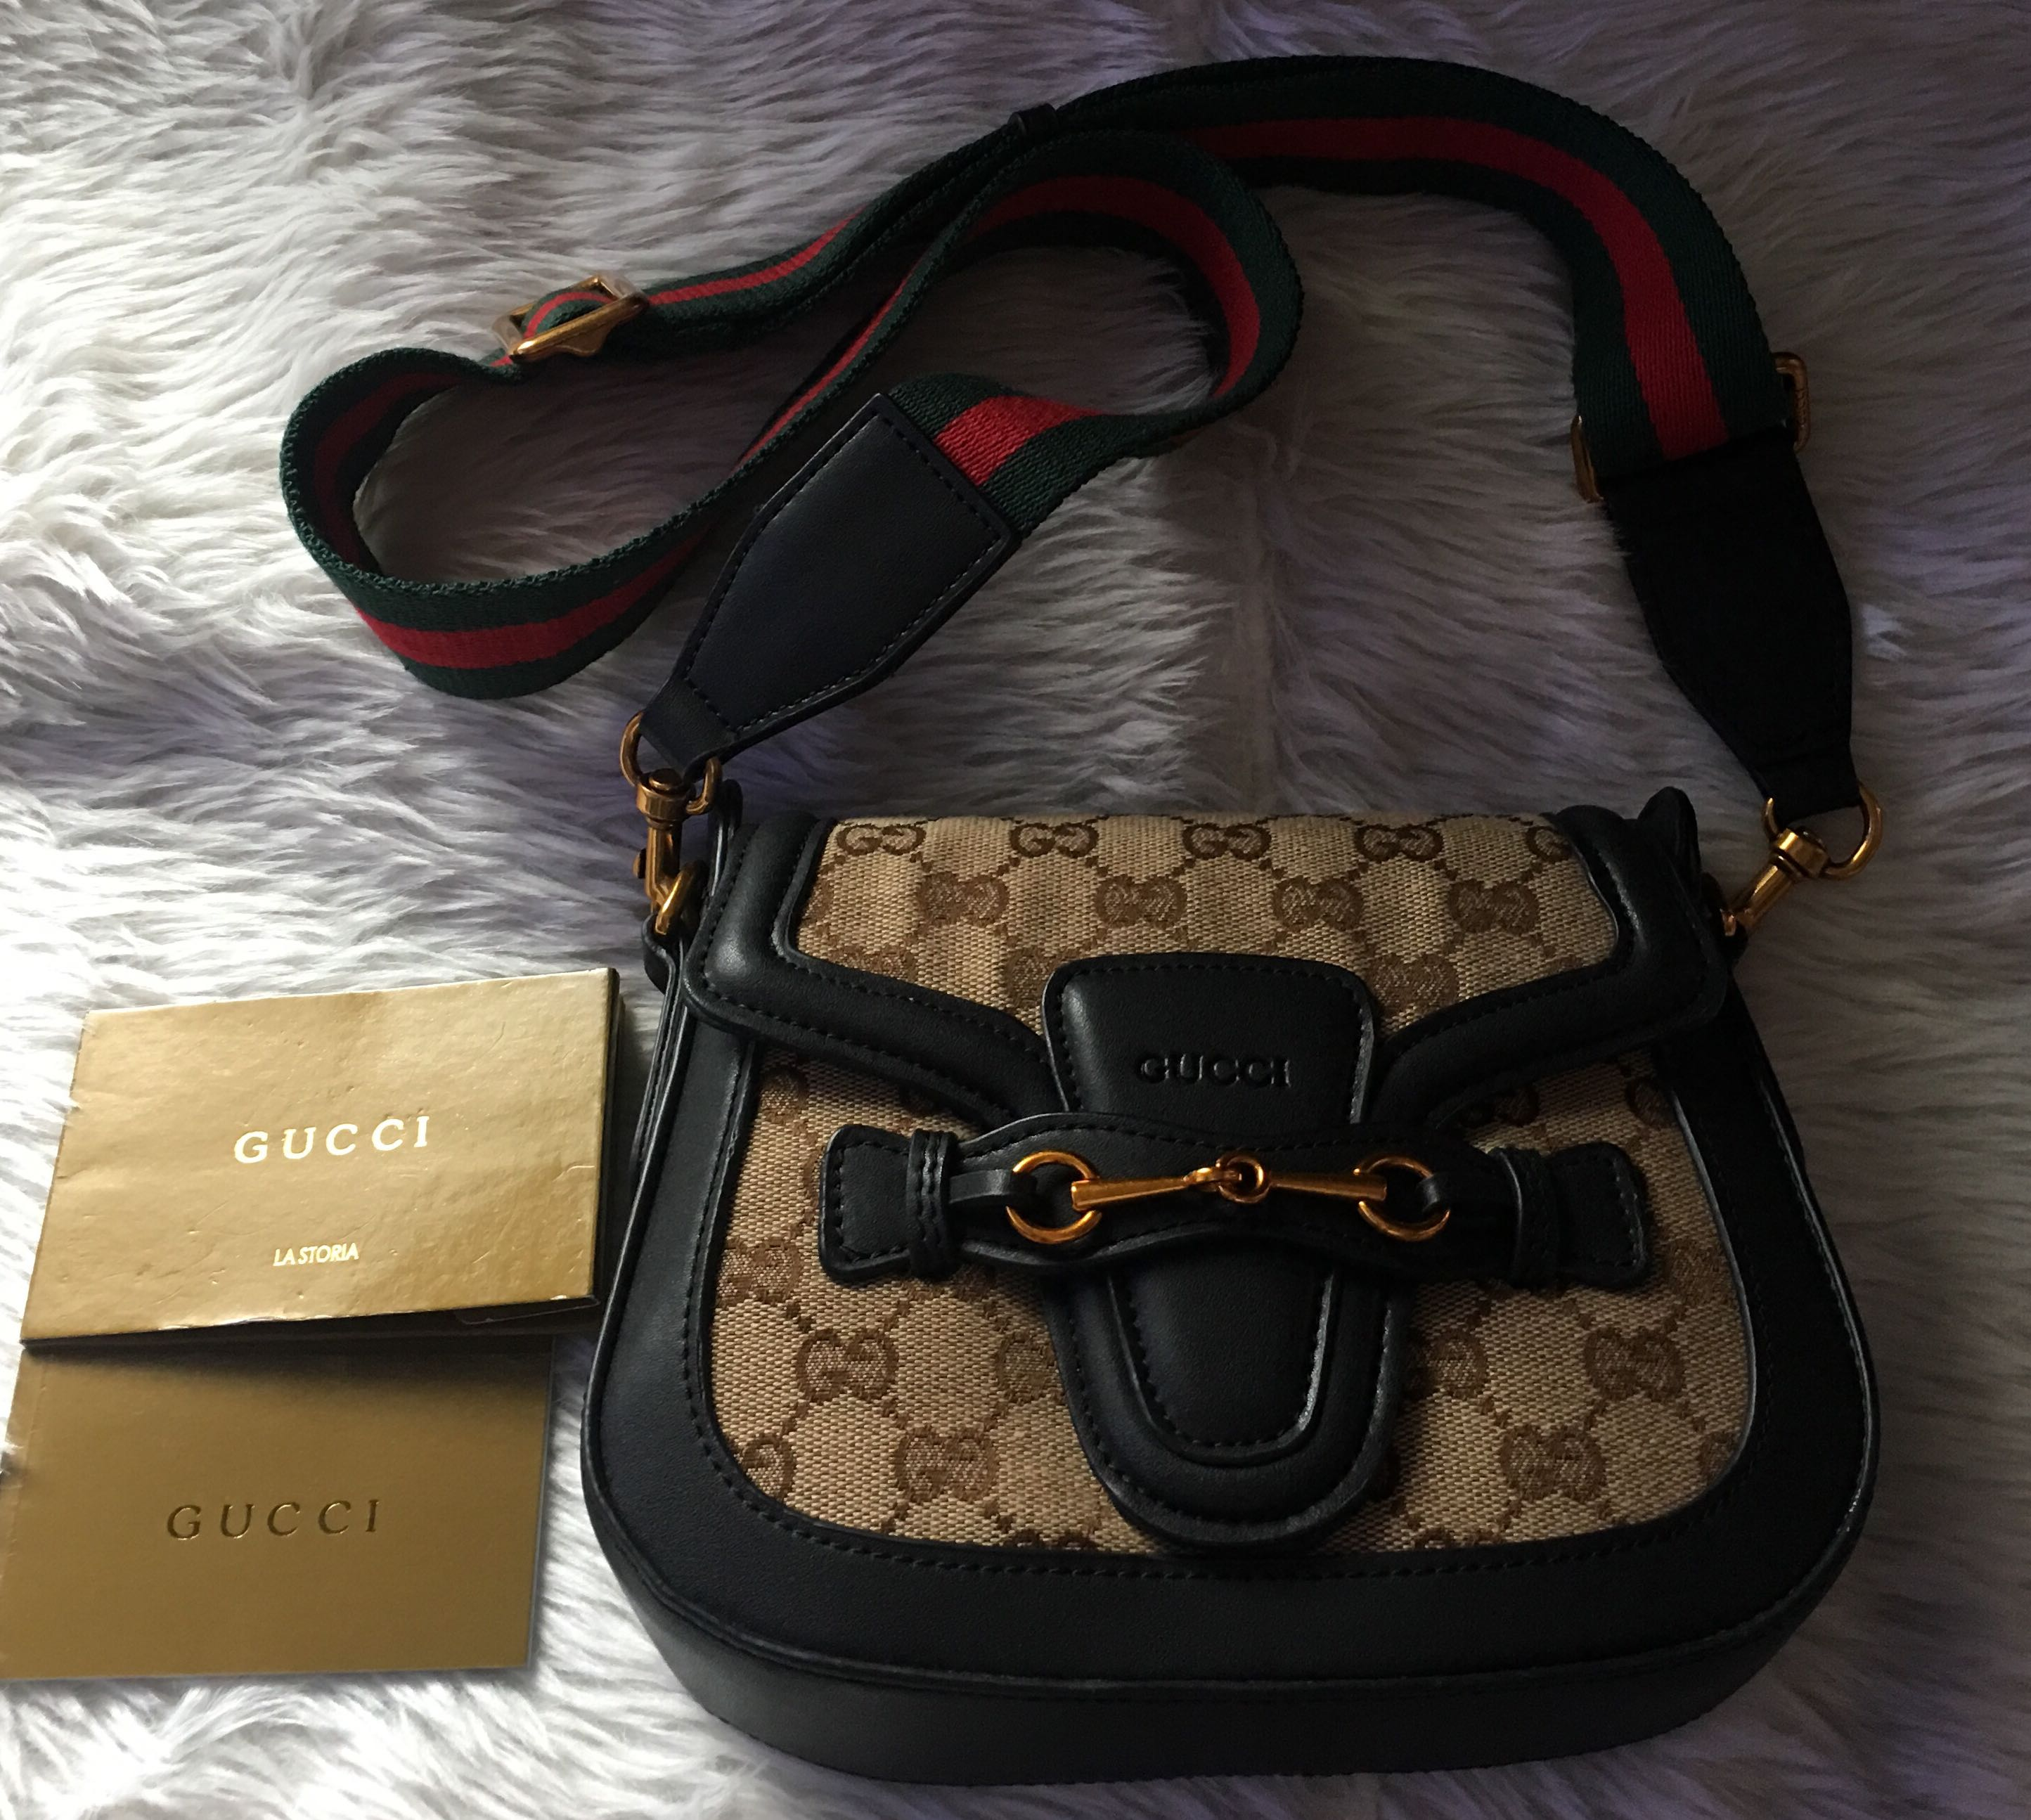 6c74a9a8c8c7 Gucci Sling bag Authentic Grade Quality, Women's Fashion, Bags ...